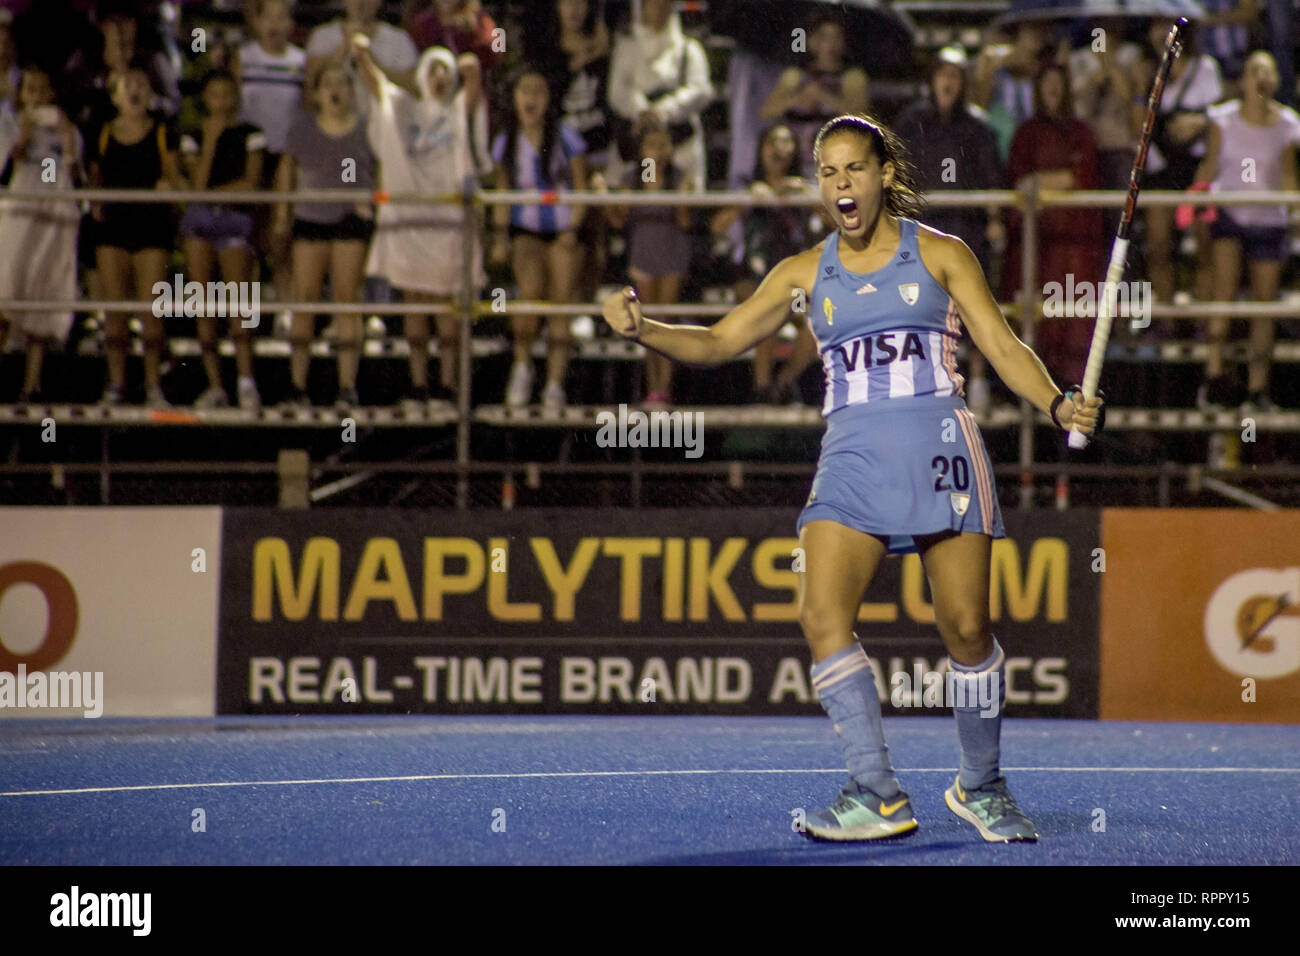 Buenos Aires, Federal Capital, Argentina. 22nd Feb, 2019. Today, Friday, February 22, the women's team of Hockey Argentina, ''Las Leonas'', maintained the unbeaten by drawing 2 goals with the German national team (5th in the world ranking) after defeating Belgium and equaling against the United States. The Argentines (4th in the world ranking) achieved an additional point by winning in penal 4 goals by 3. Their next challenge will be this Sunday, February 24 against the Dutch team. The match between the Argentine teams of Argentina vs Germany was suspended due to the strong storm that b Stock Photo